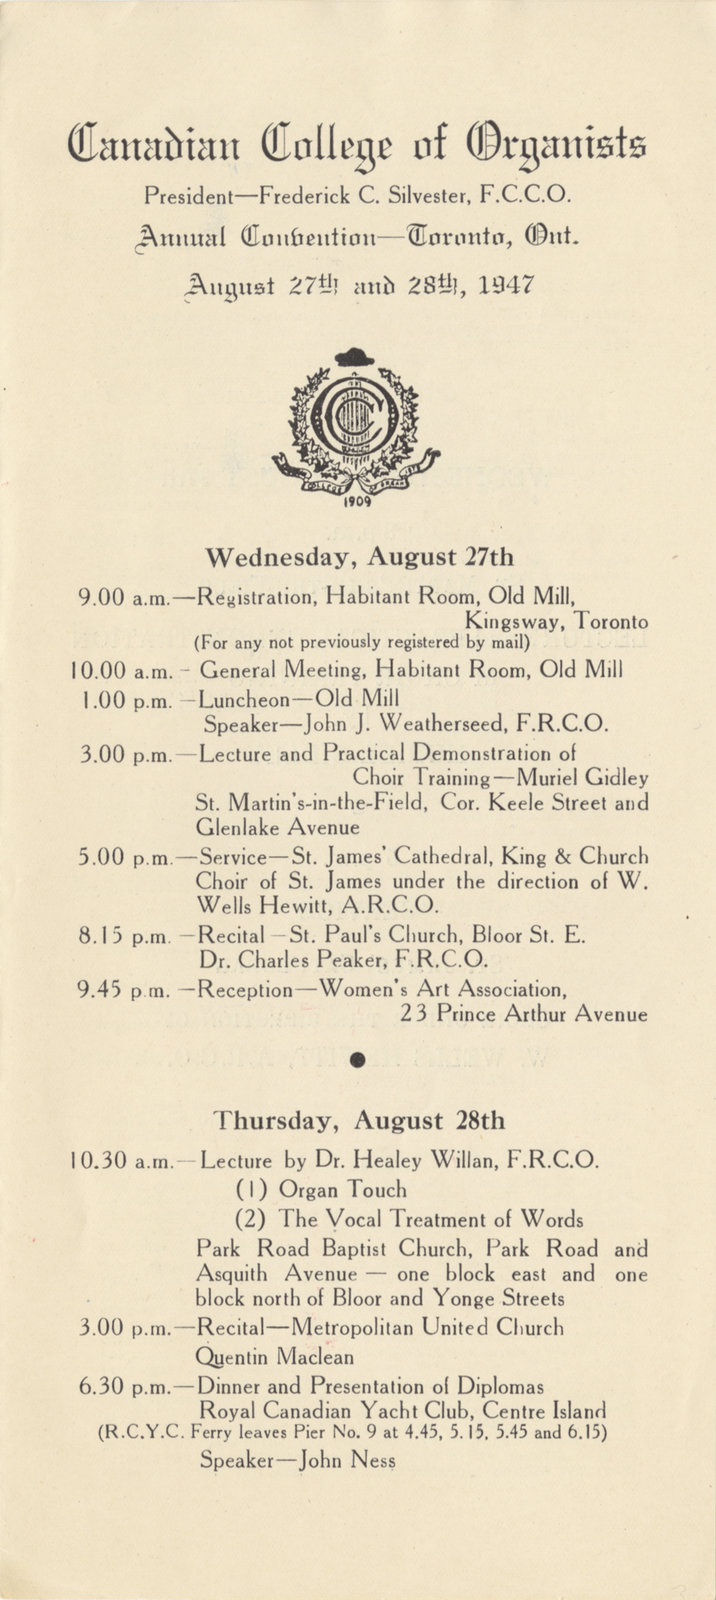 Canadian College of Organists annual convention program, 1947